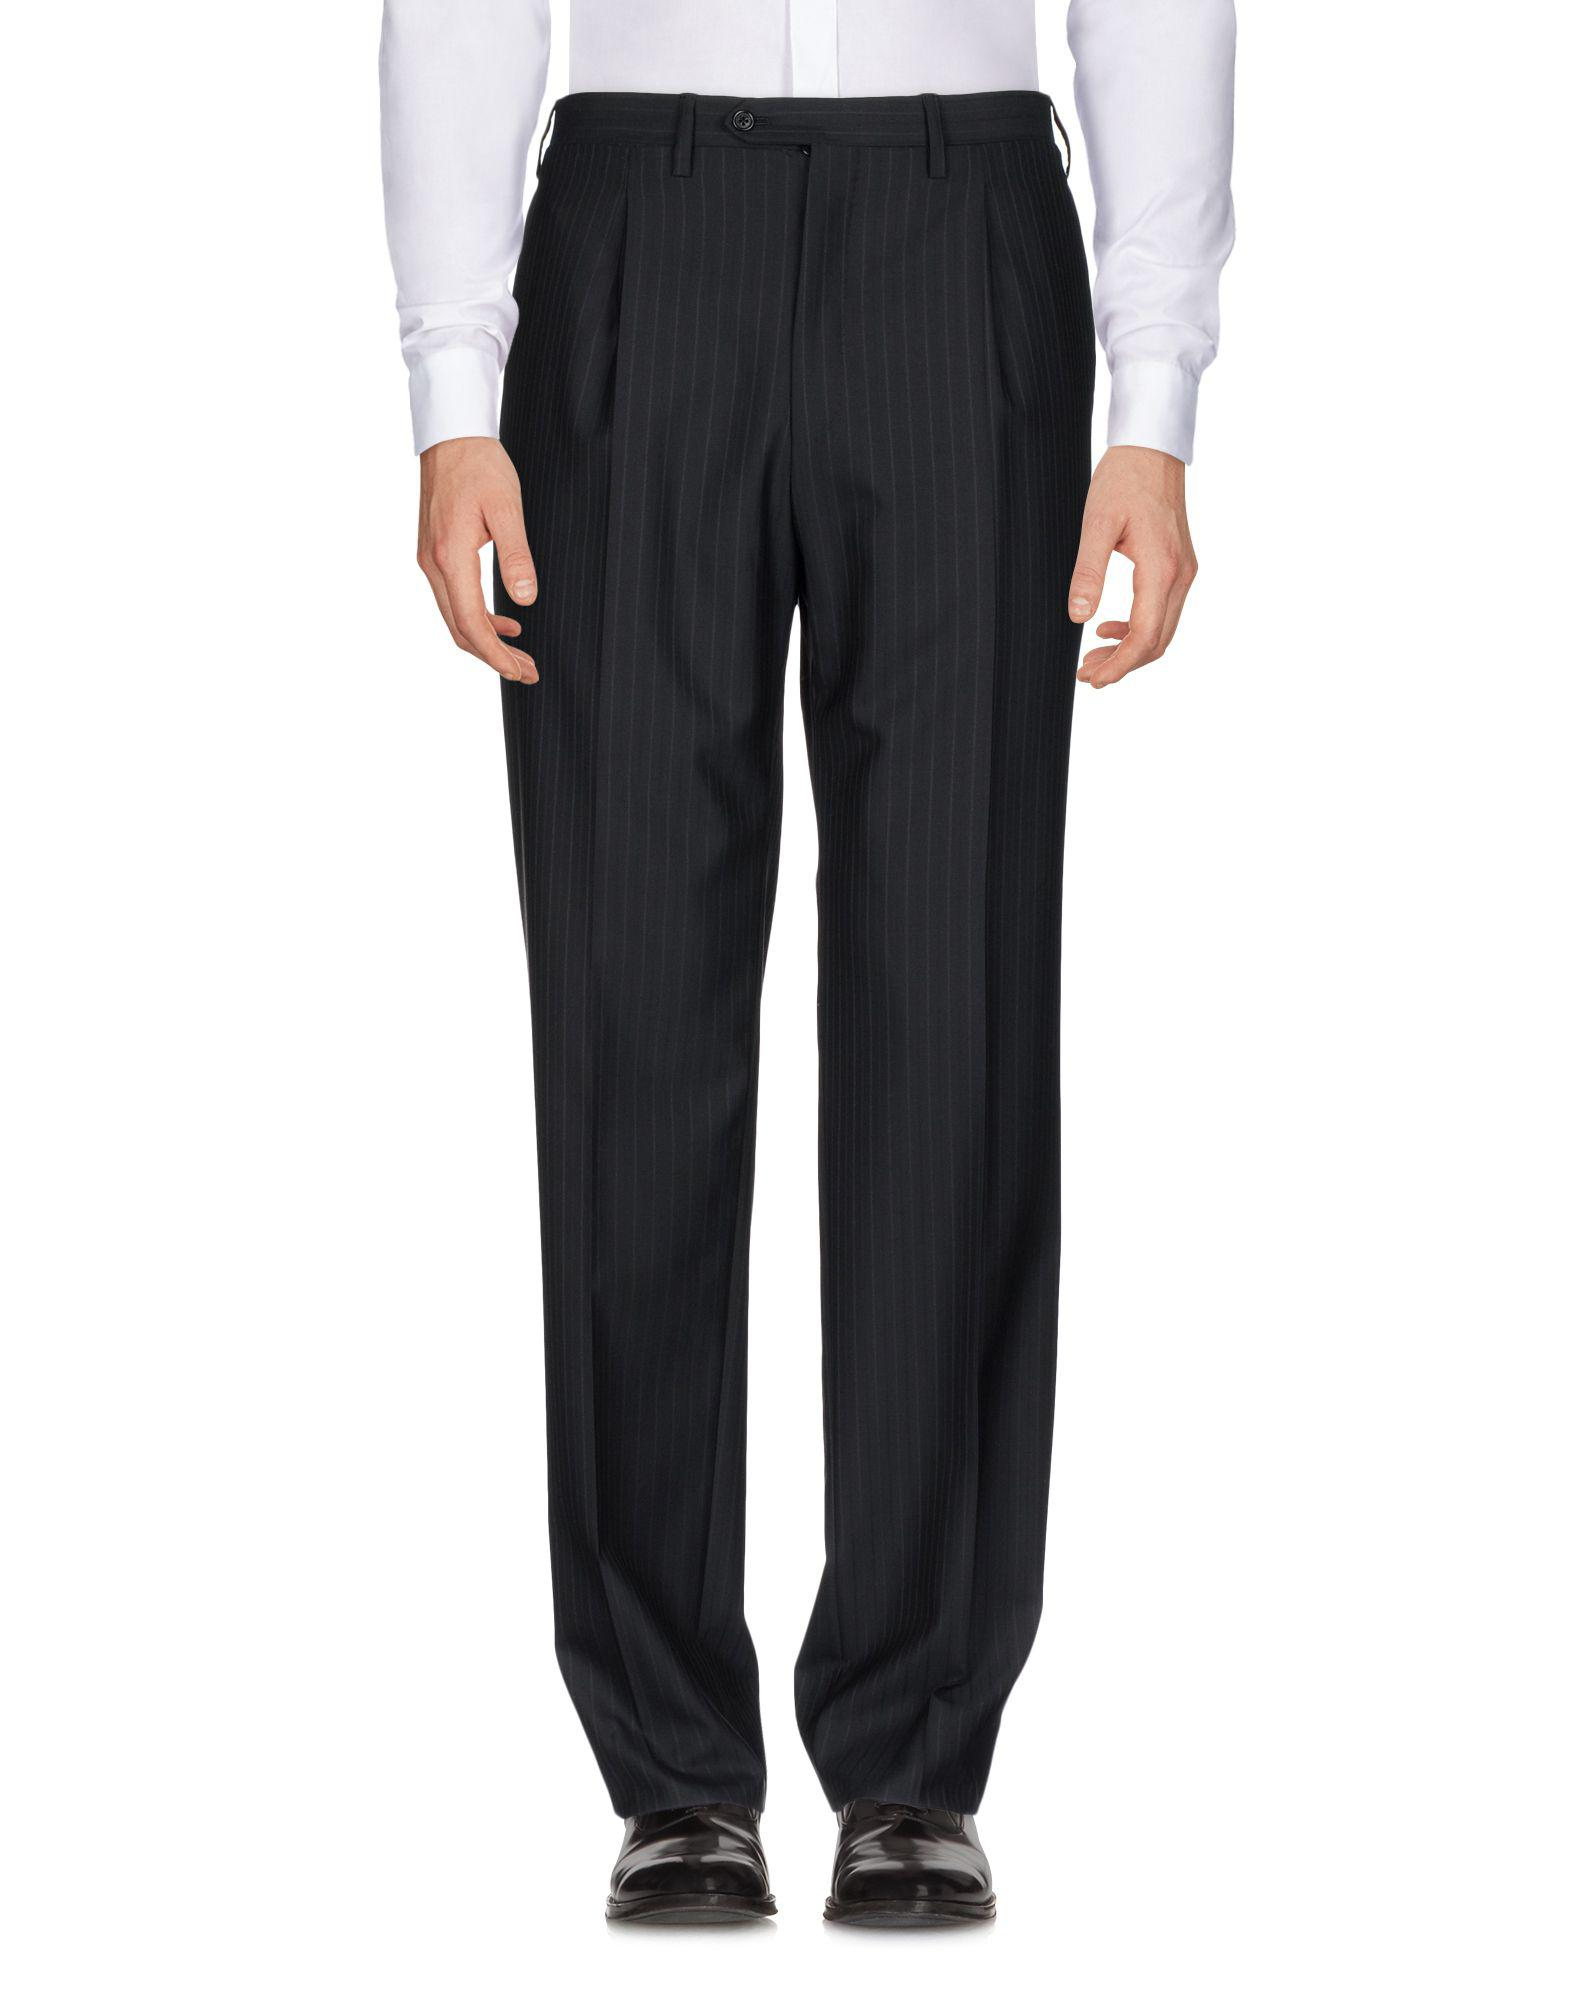 TROUSERS - Casual trousers Kiton jkcR5dONP